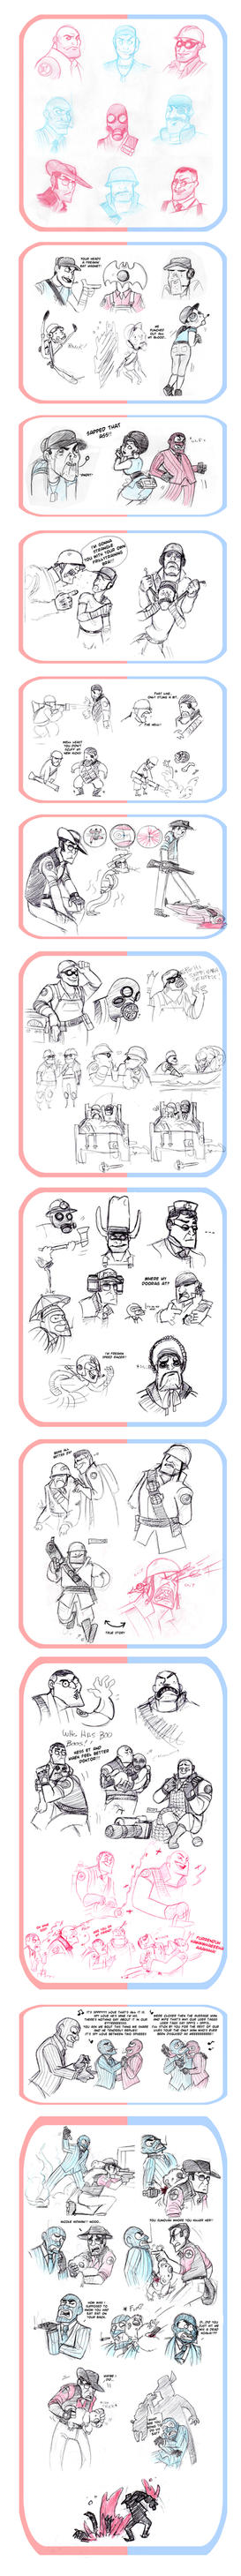 Team Fortress dump by OhSadface